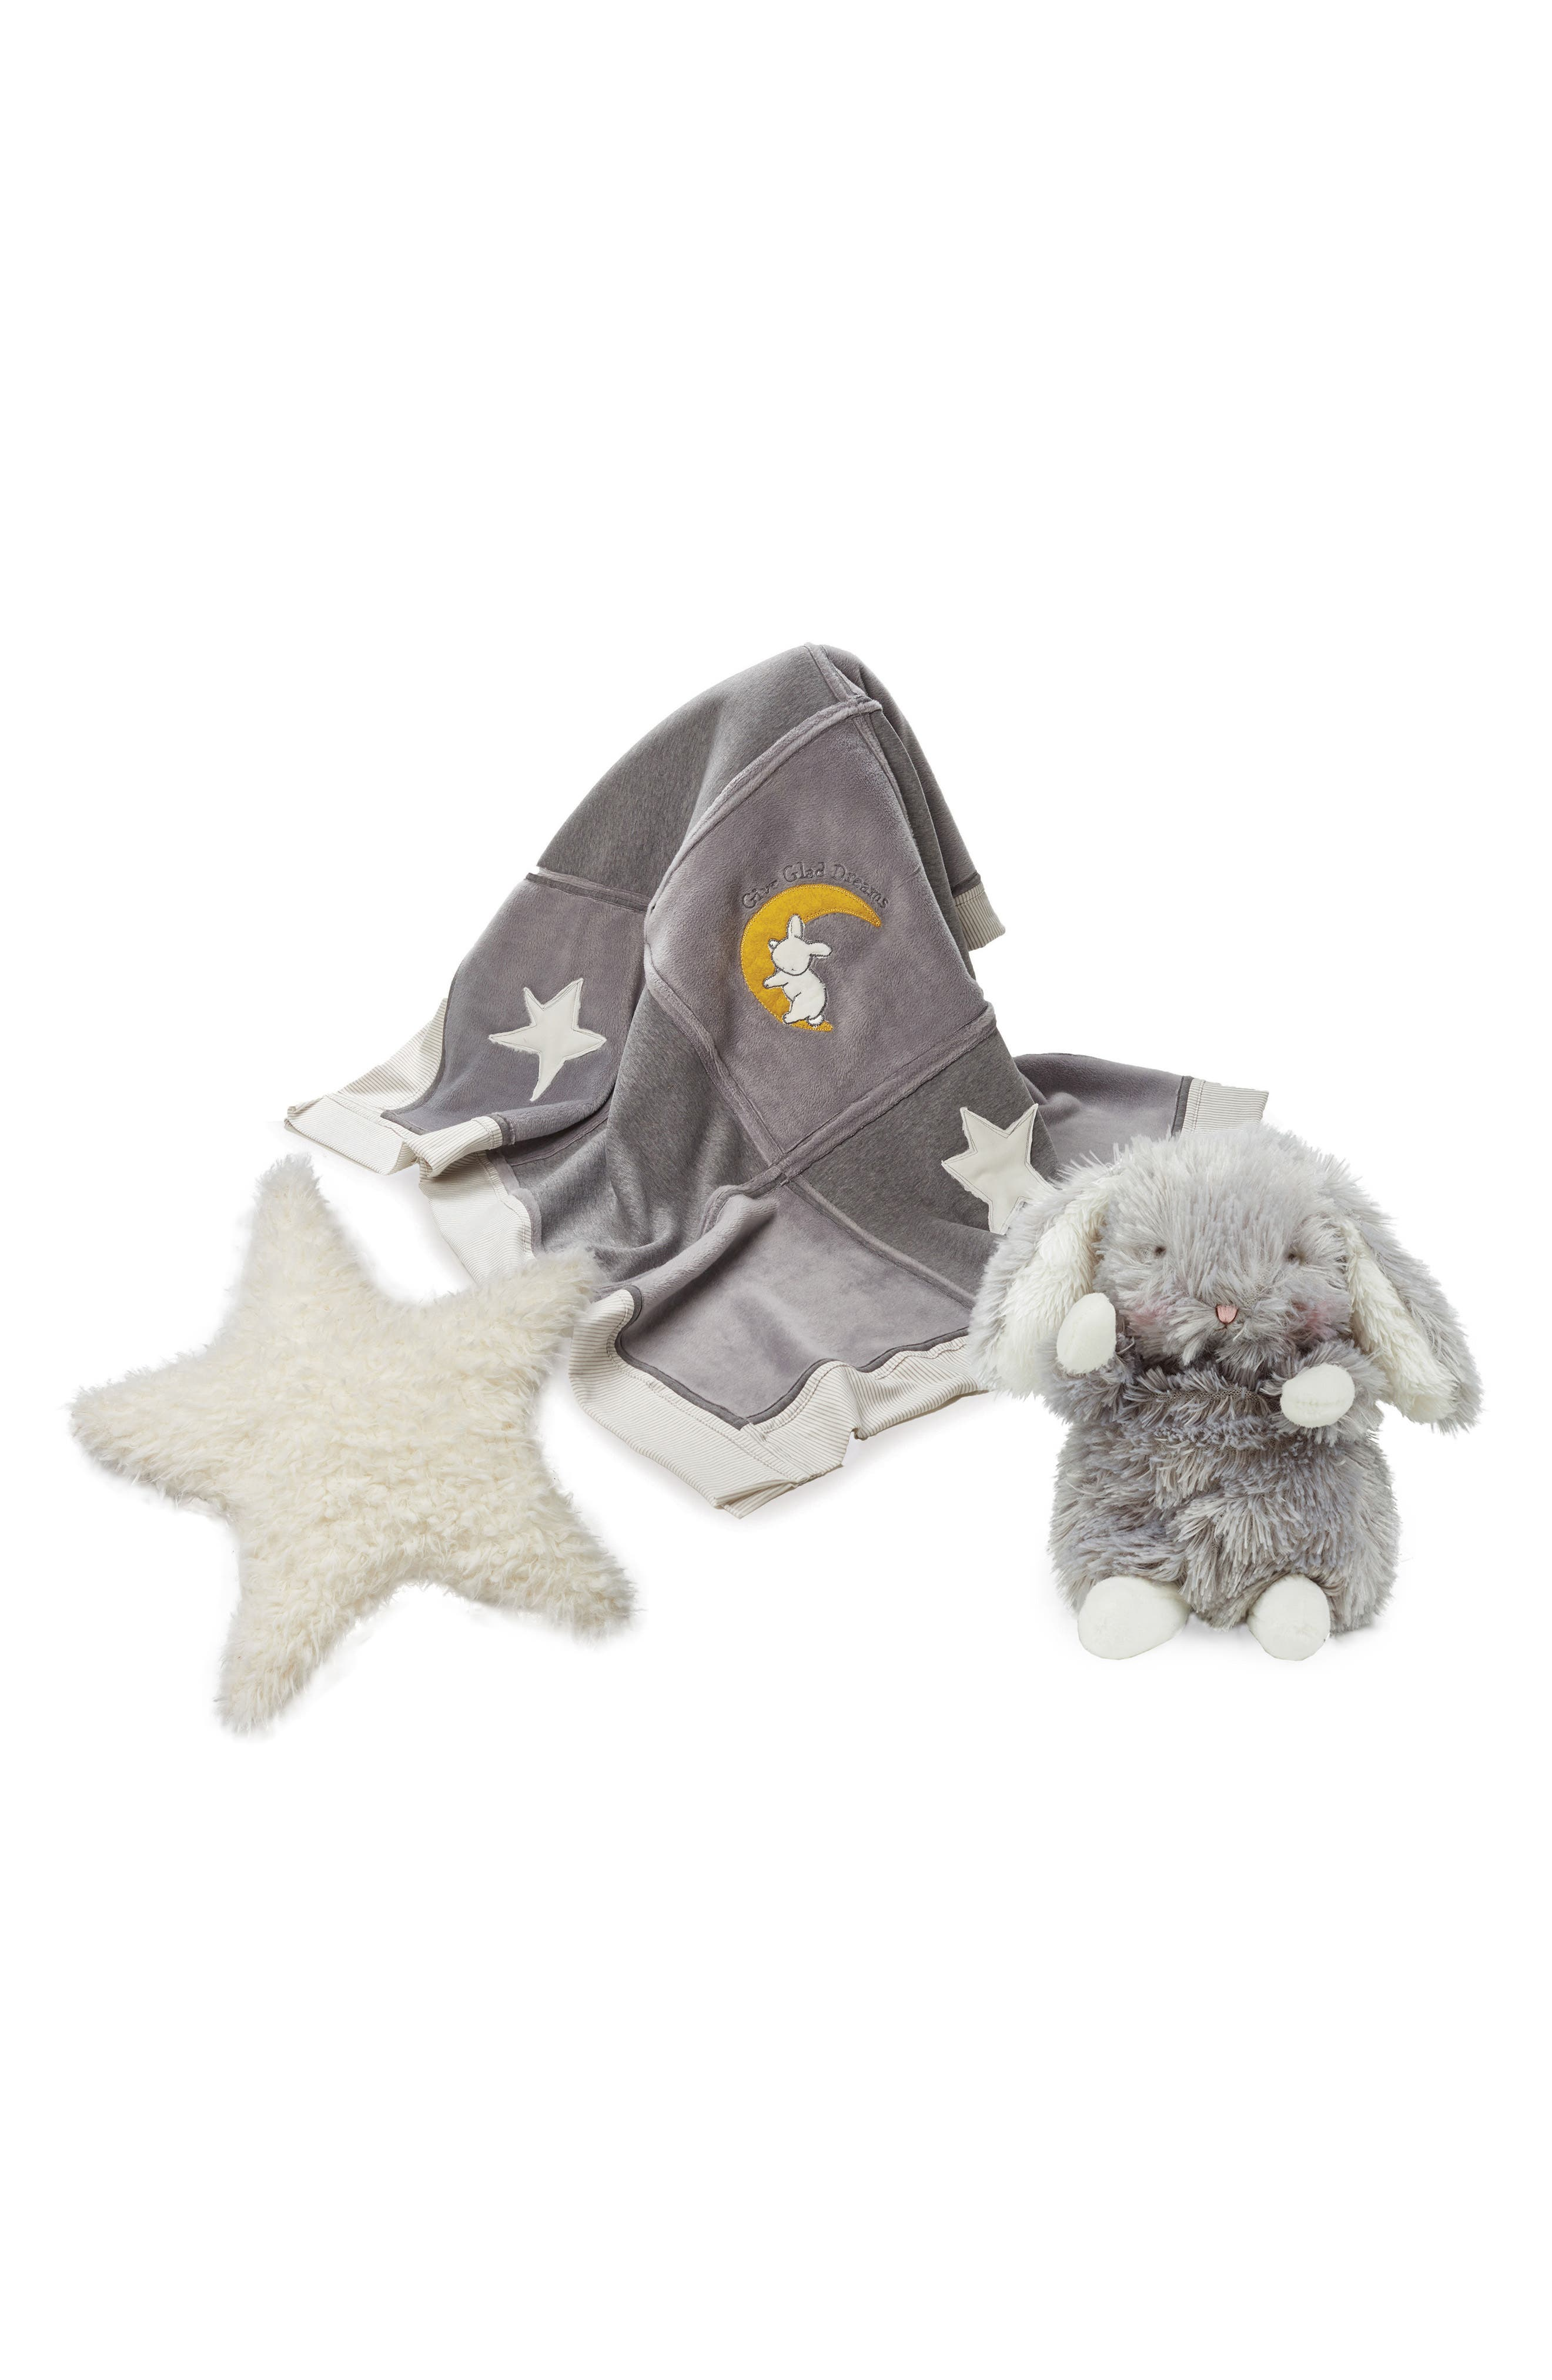 Glad Dreams Blanket, Pillow & Stuffed Animal Set,                         Main,                         color,